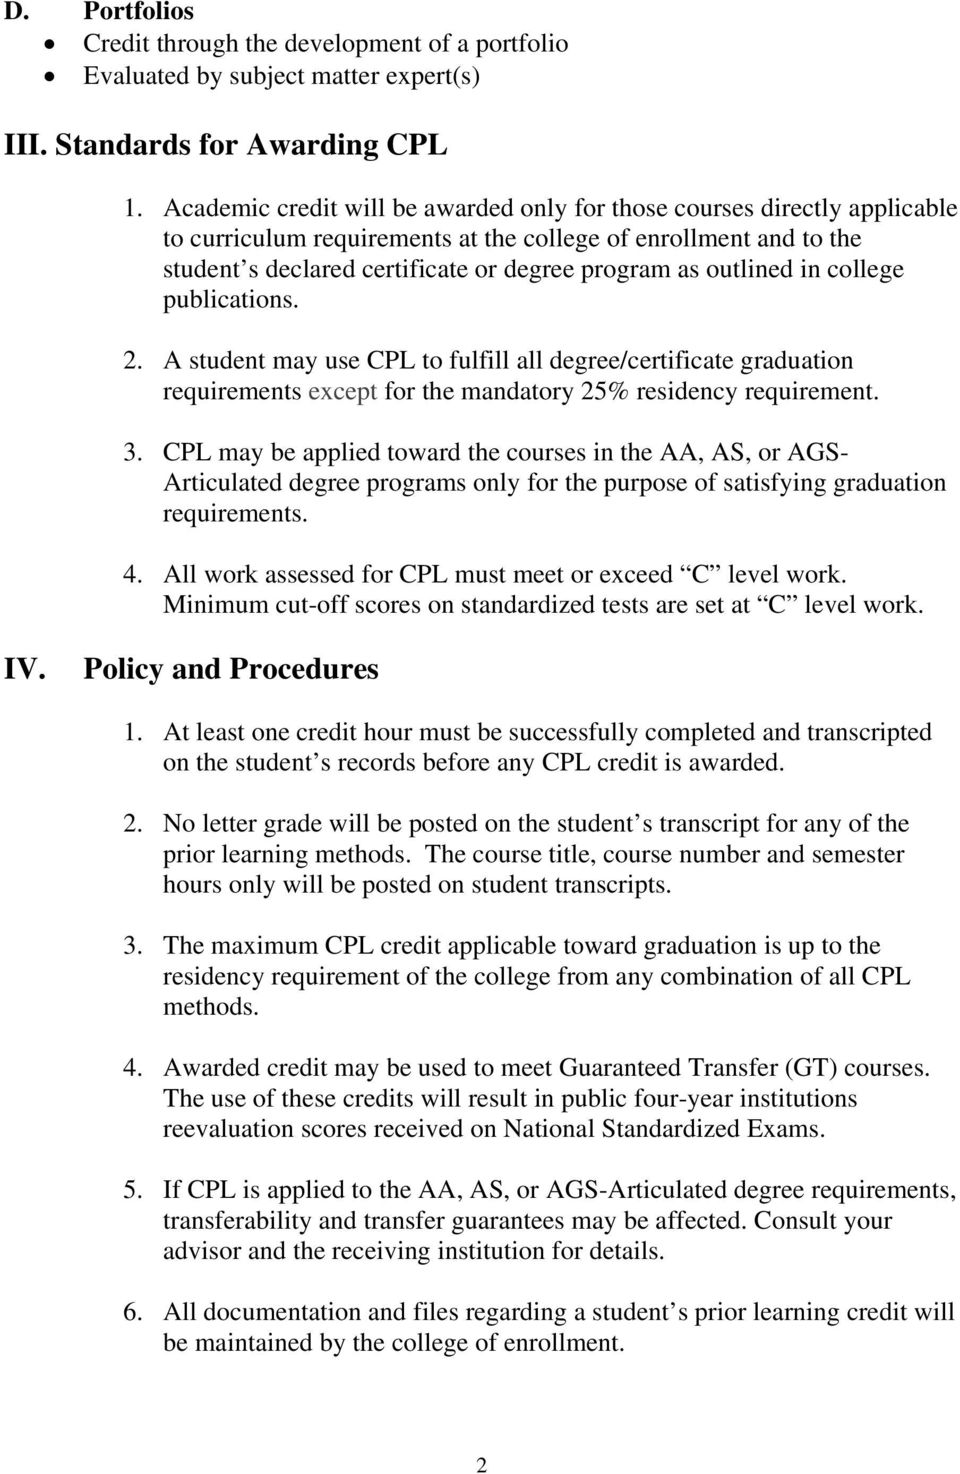 outlined in college publications. 2. A student may use CPL to fulfill all degree/certificate graduation requirements except for the mandatory 25% residency requirement.